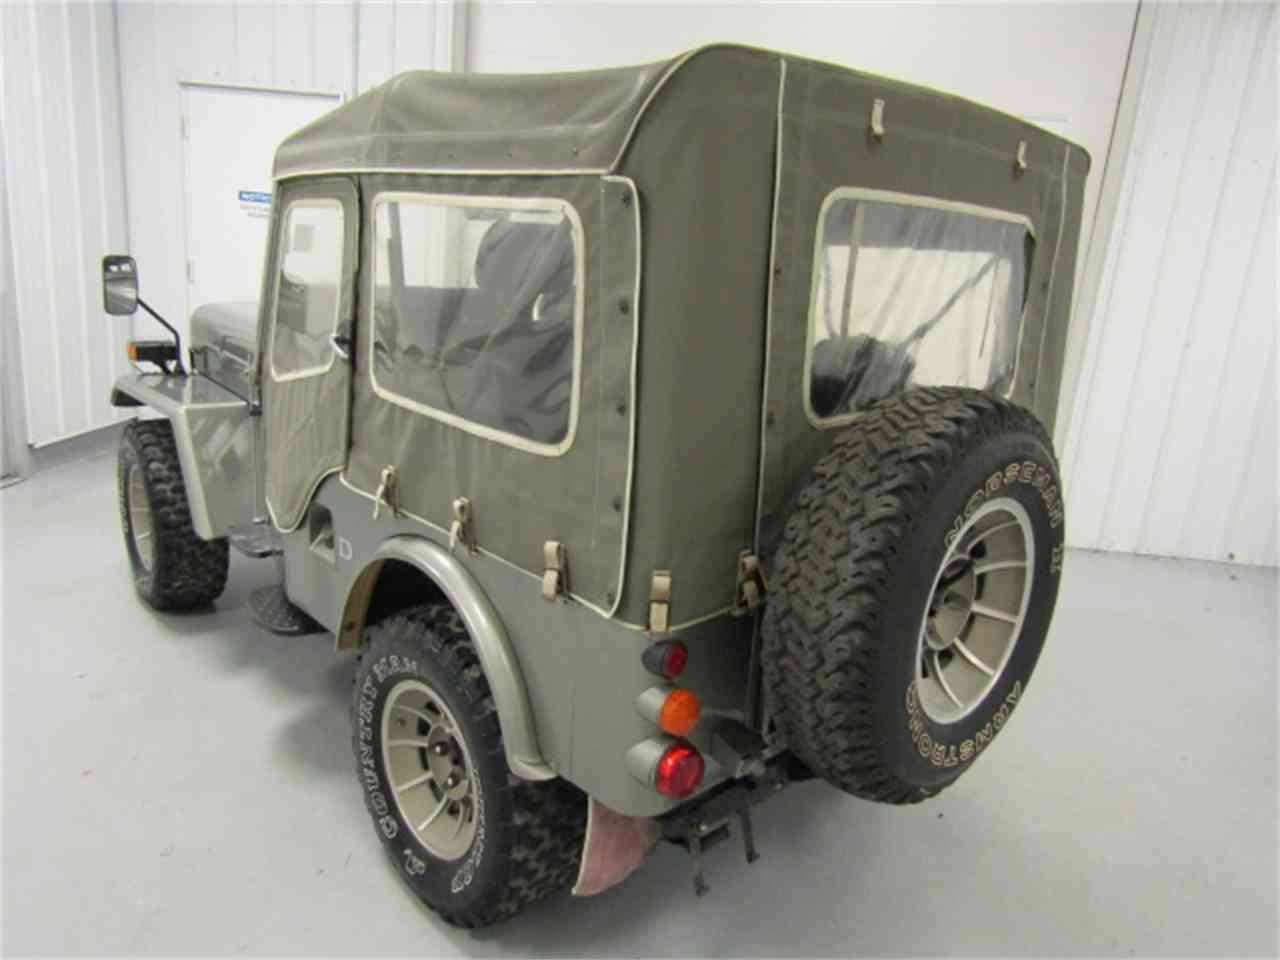 Large Picture of 1979 Jeep located in Christiansburg Virginia - $10,999.00 - JM3M